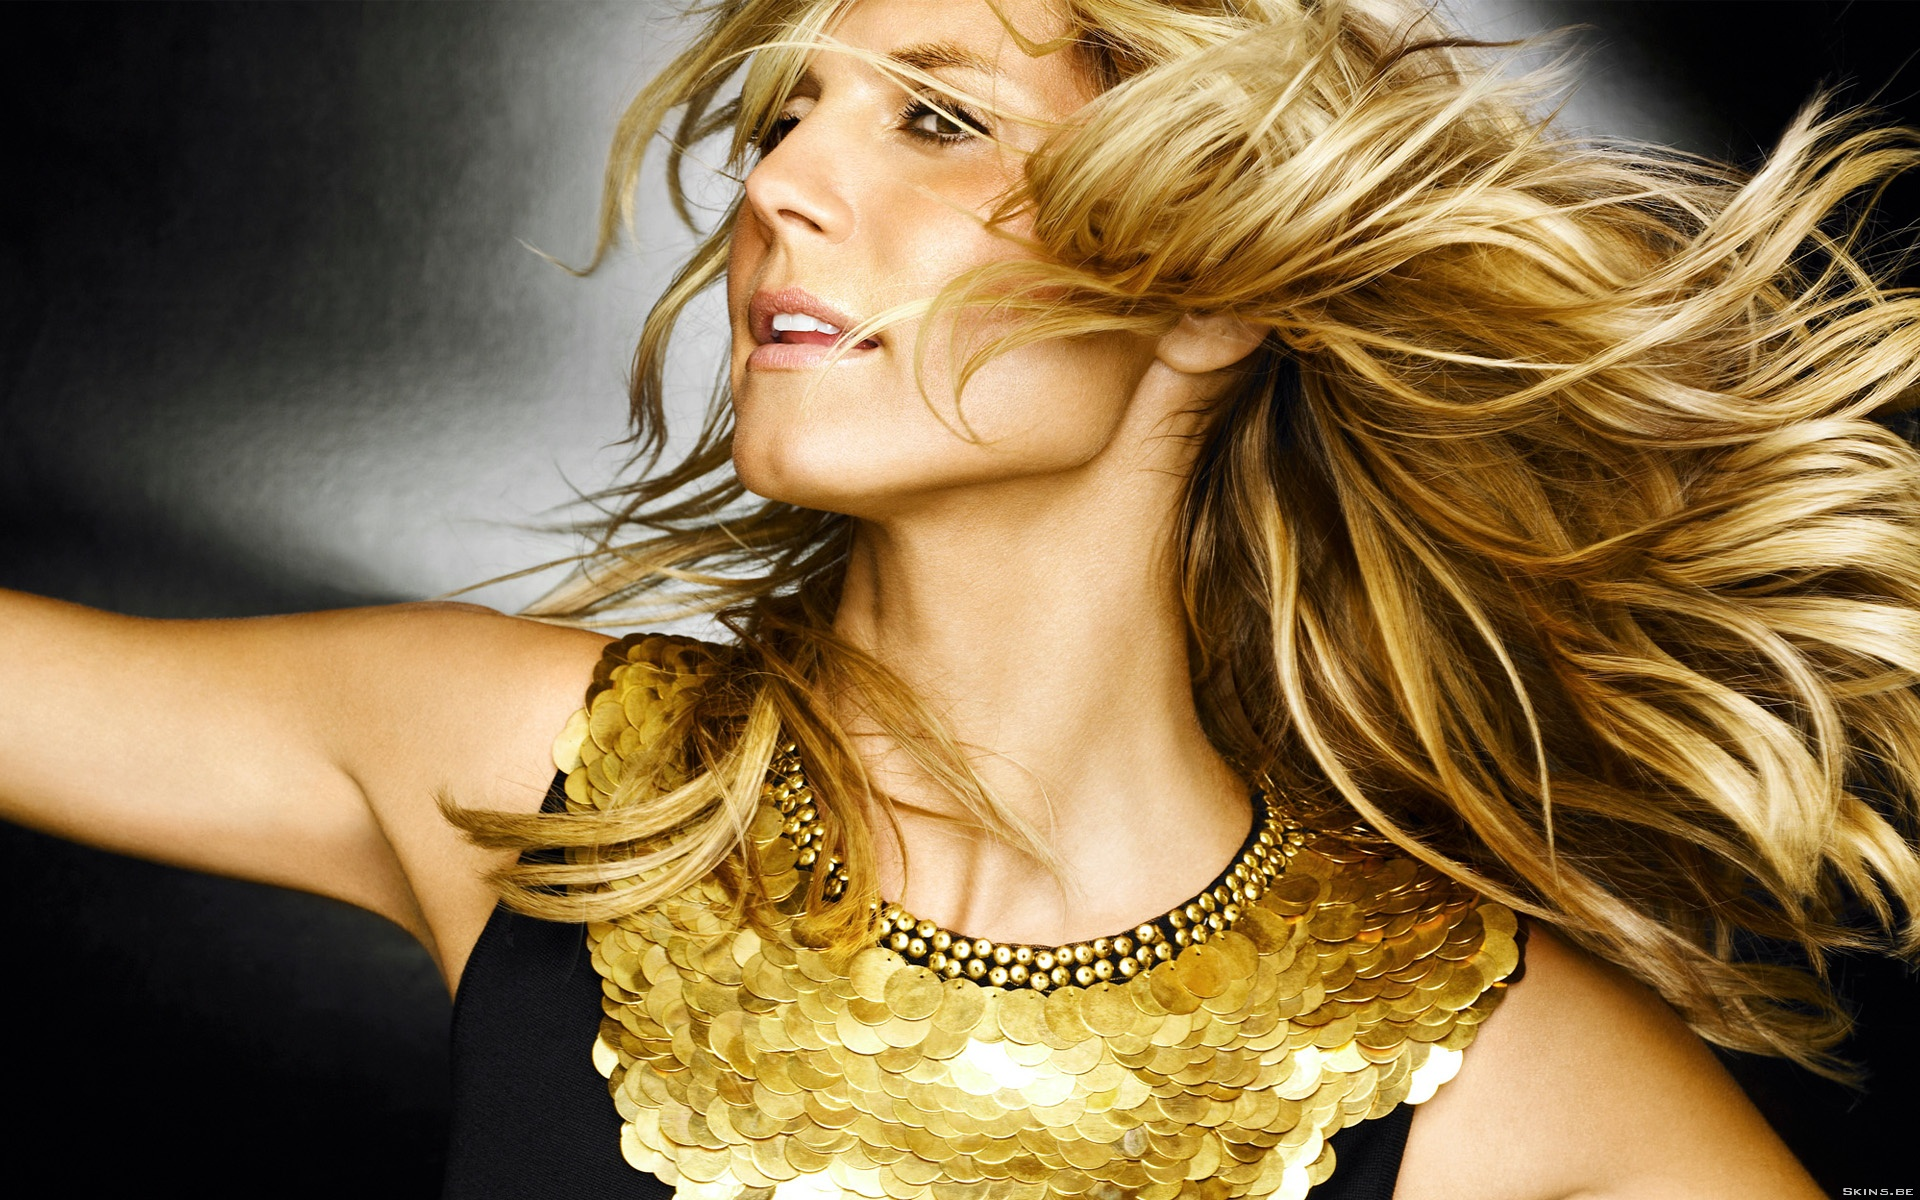 Heidi Klum wallpaper (#41364)